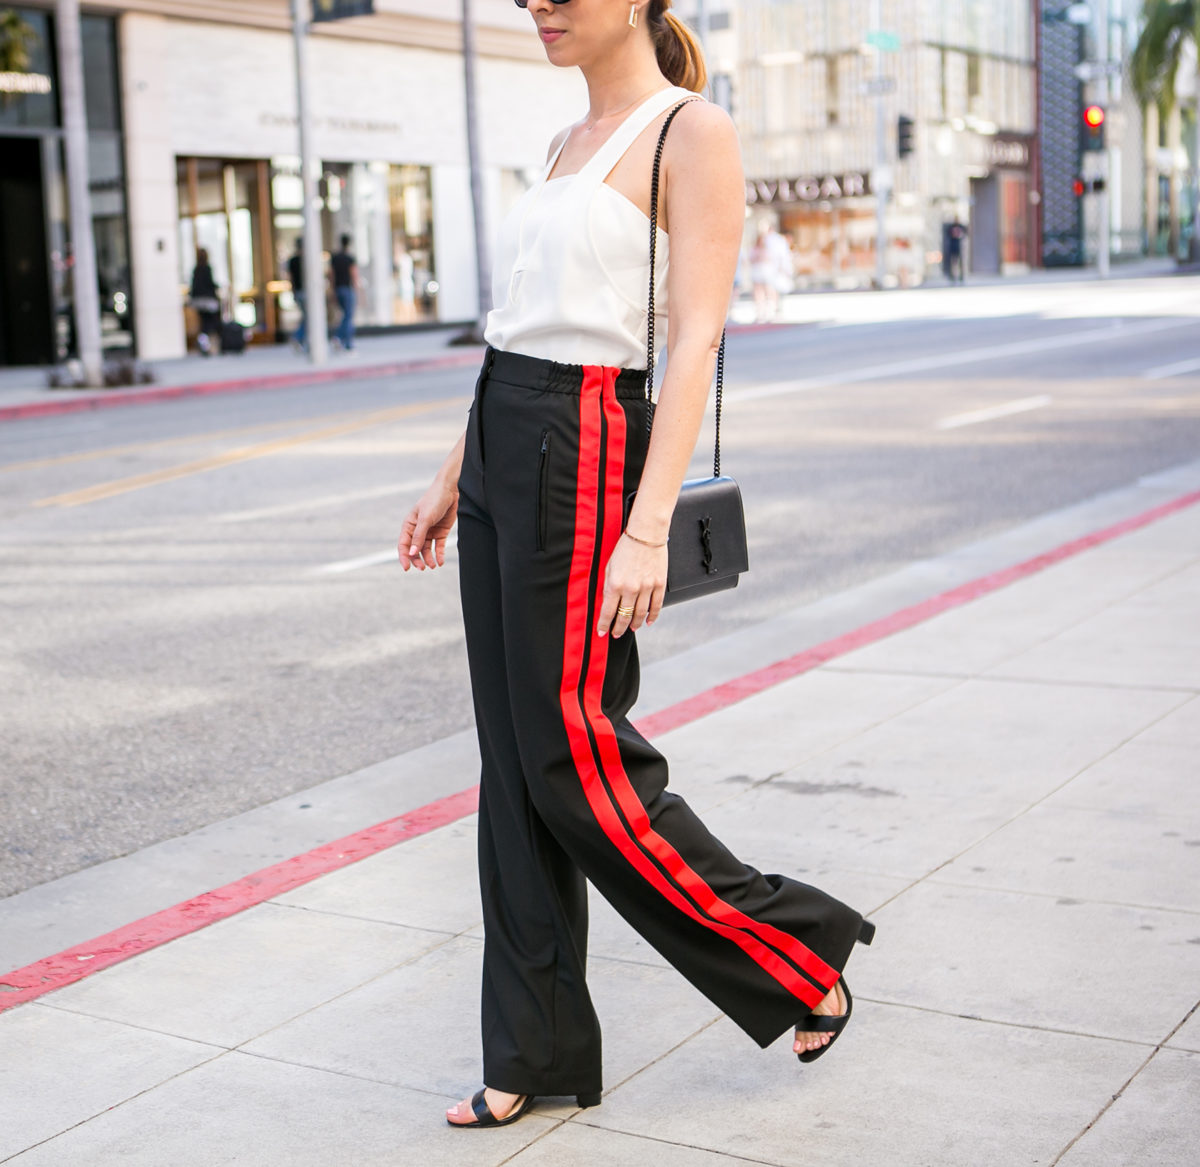 Sydne-Style-shows-spring-outfit-ideas-in-track-pants-in-beverly-hills-1200x1167